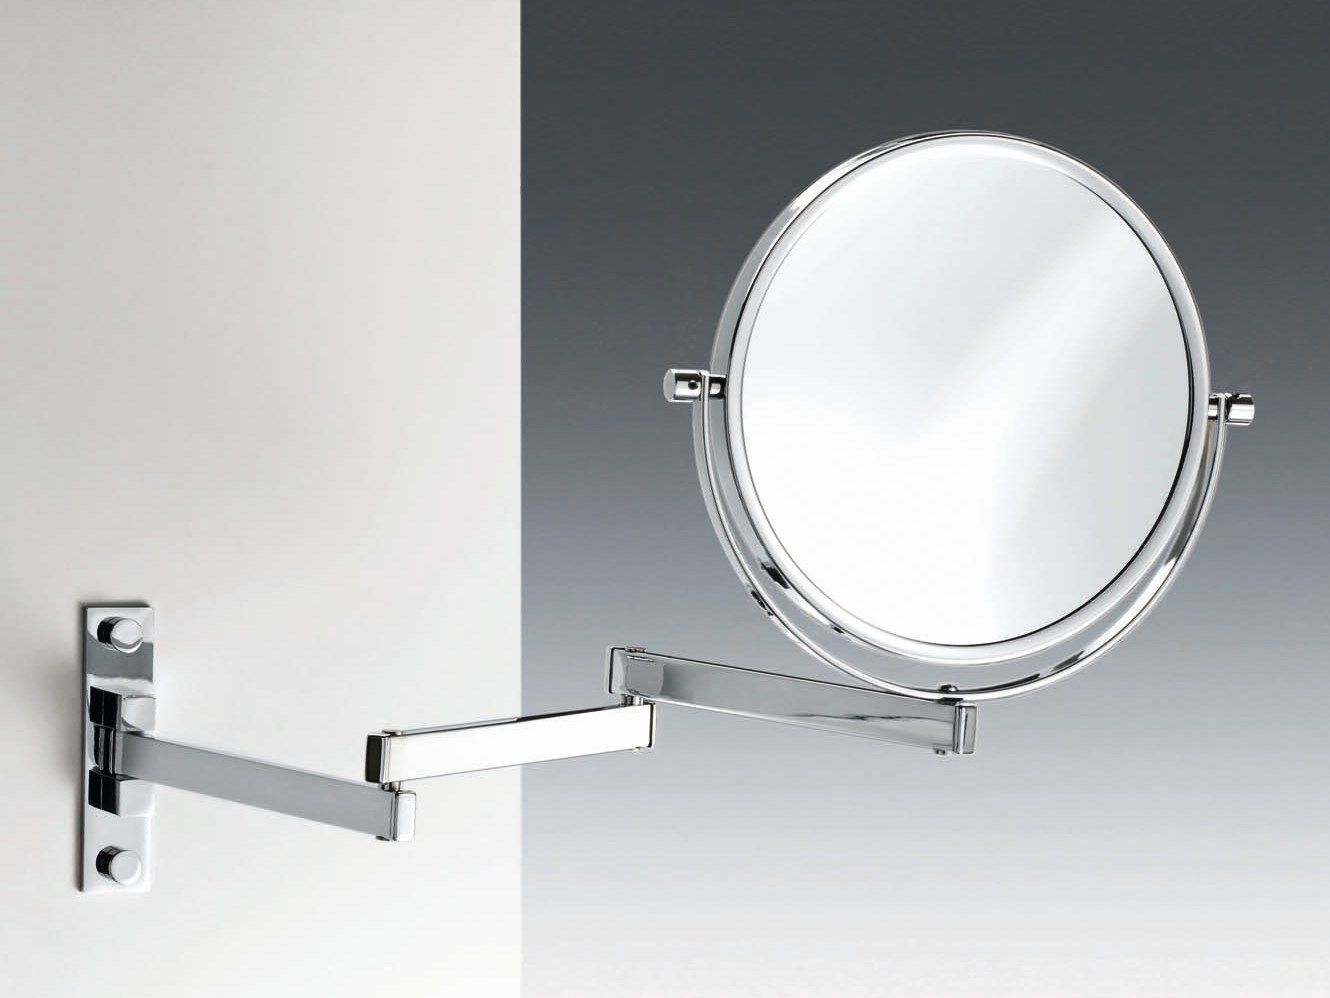 Round wall mounted shaving mirror spt 29 by decor walther for Shaving mirror